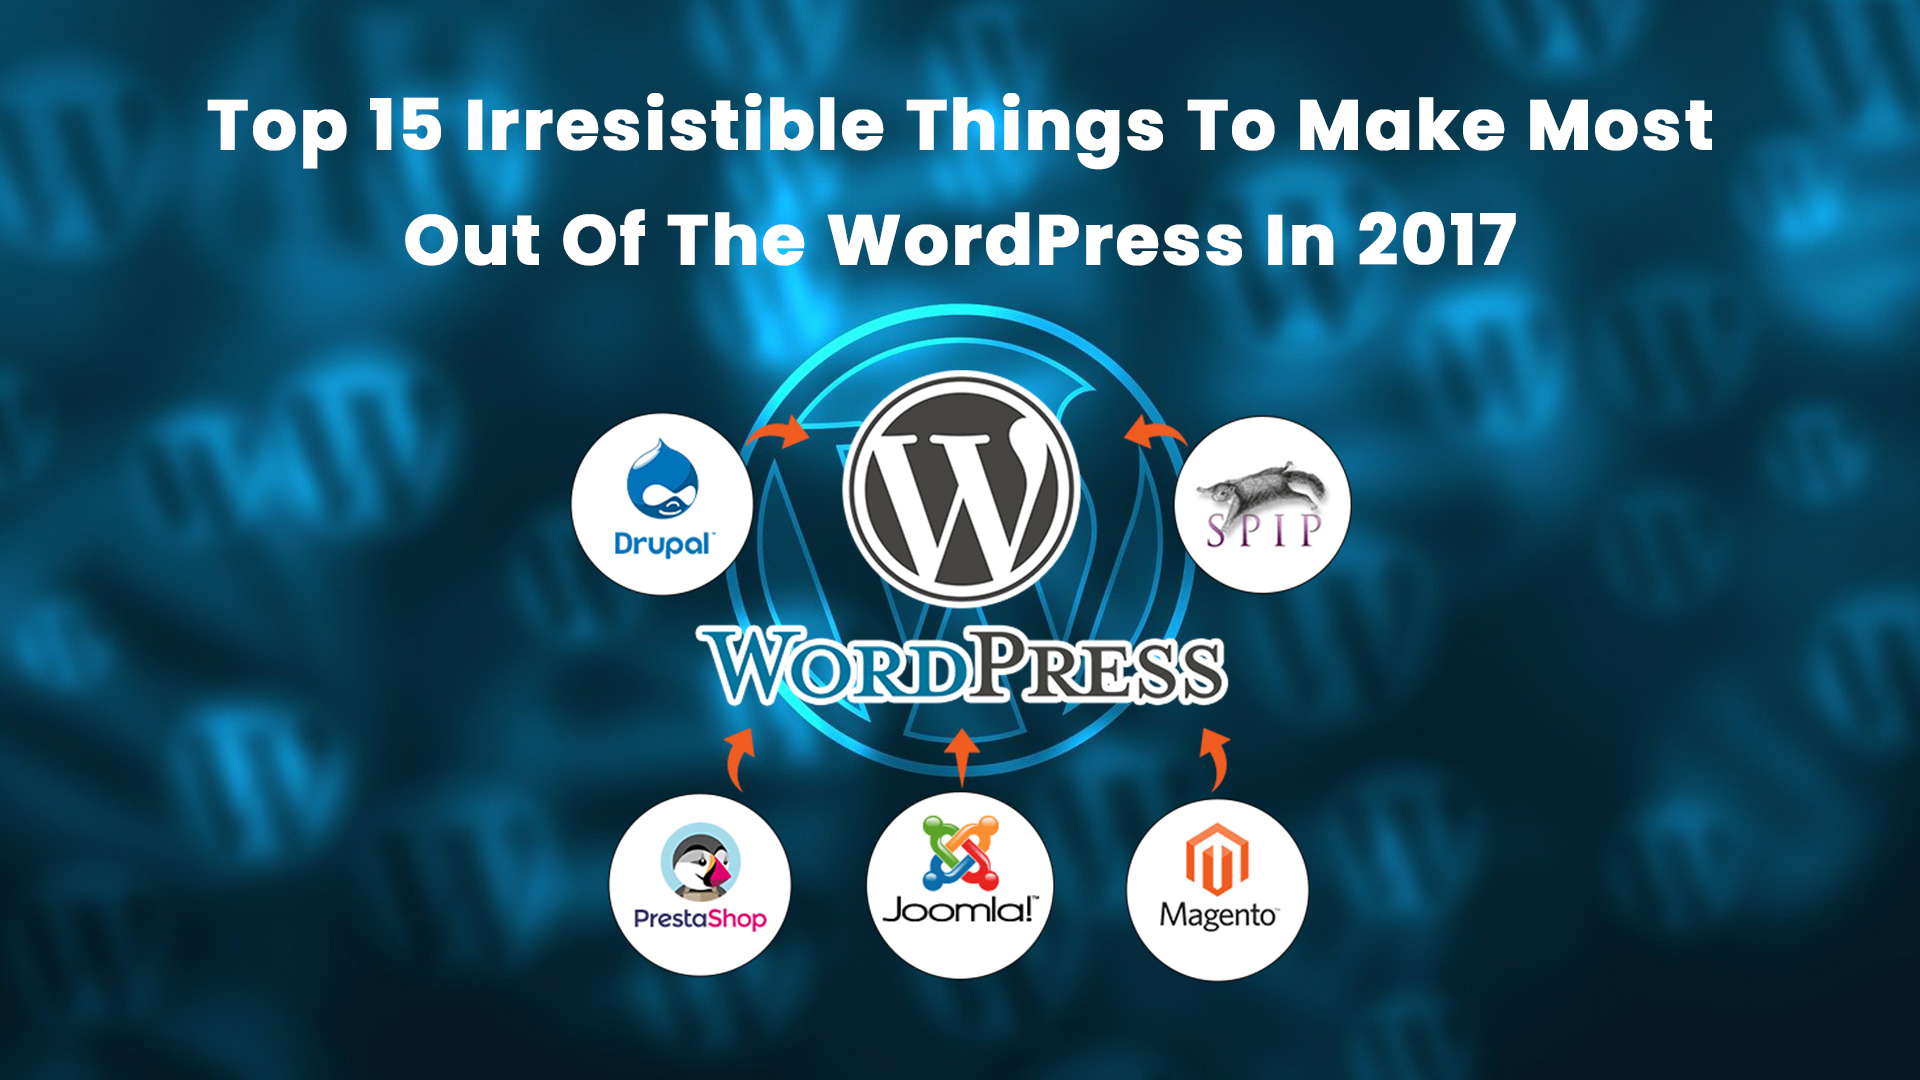 Top 15 Irresistible Things To Make Most Out Of The WordPress In 2017